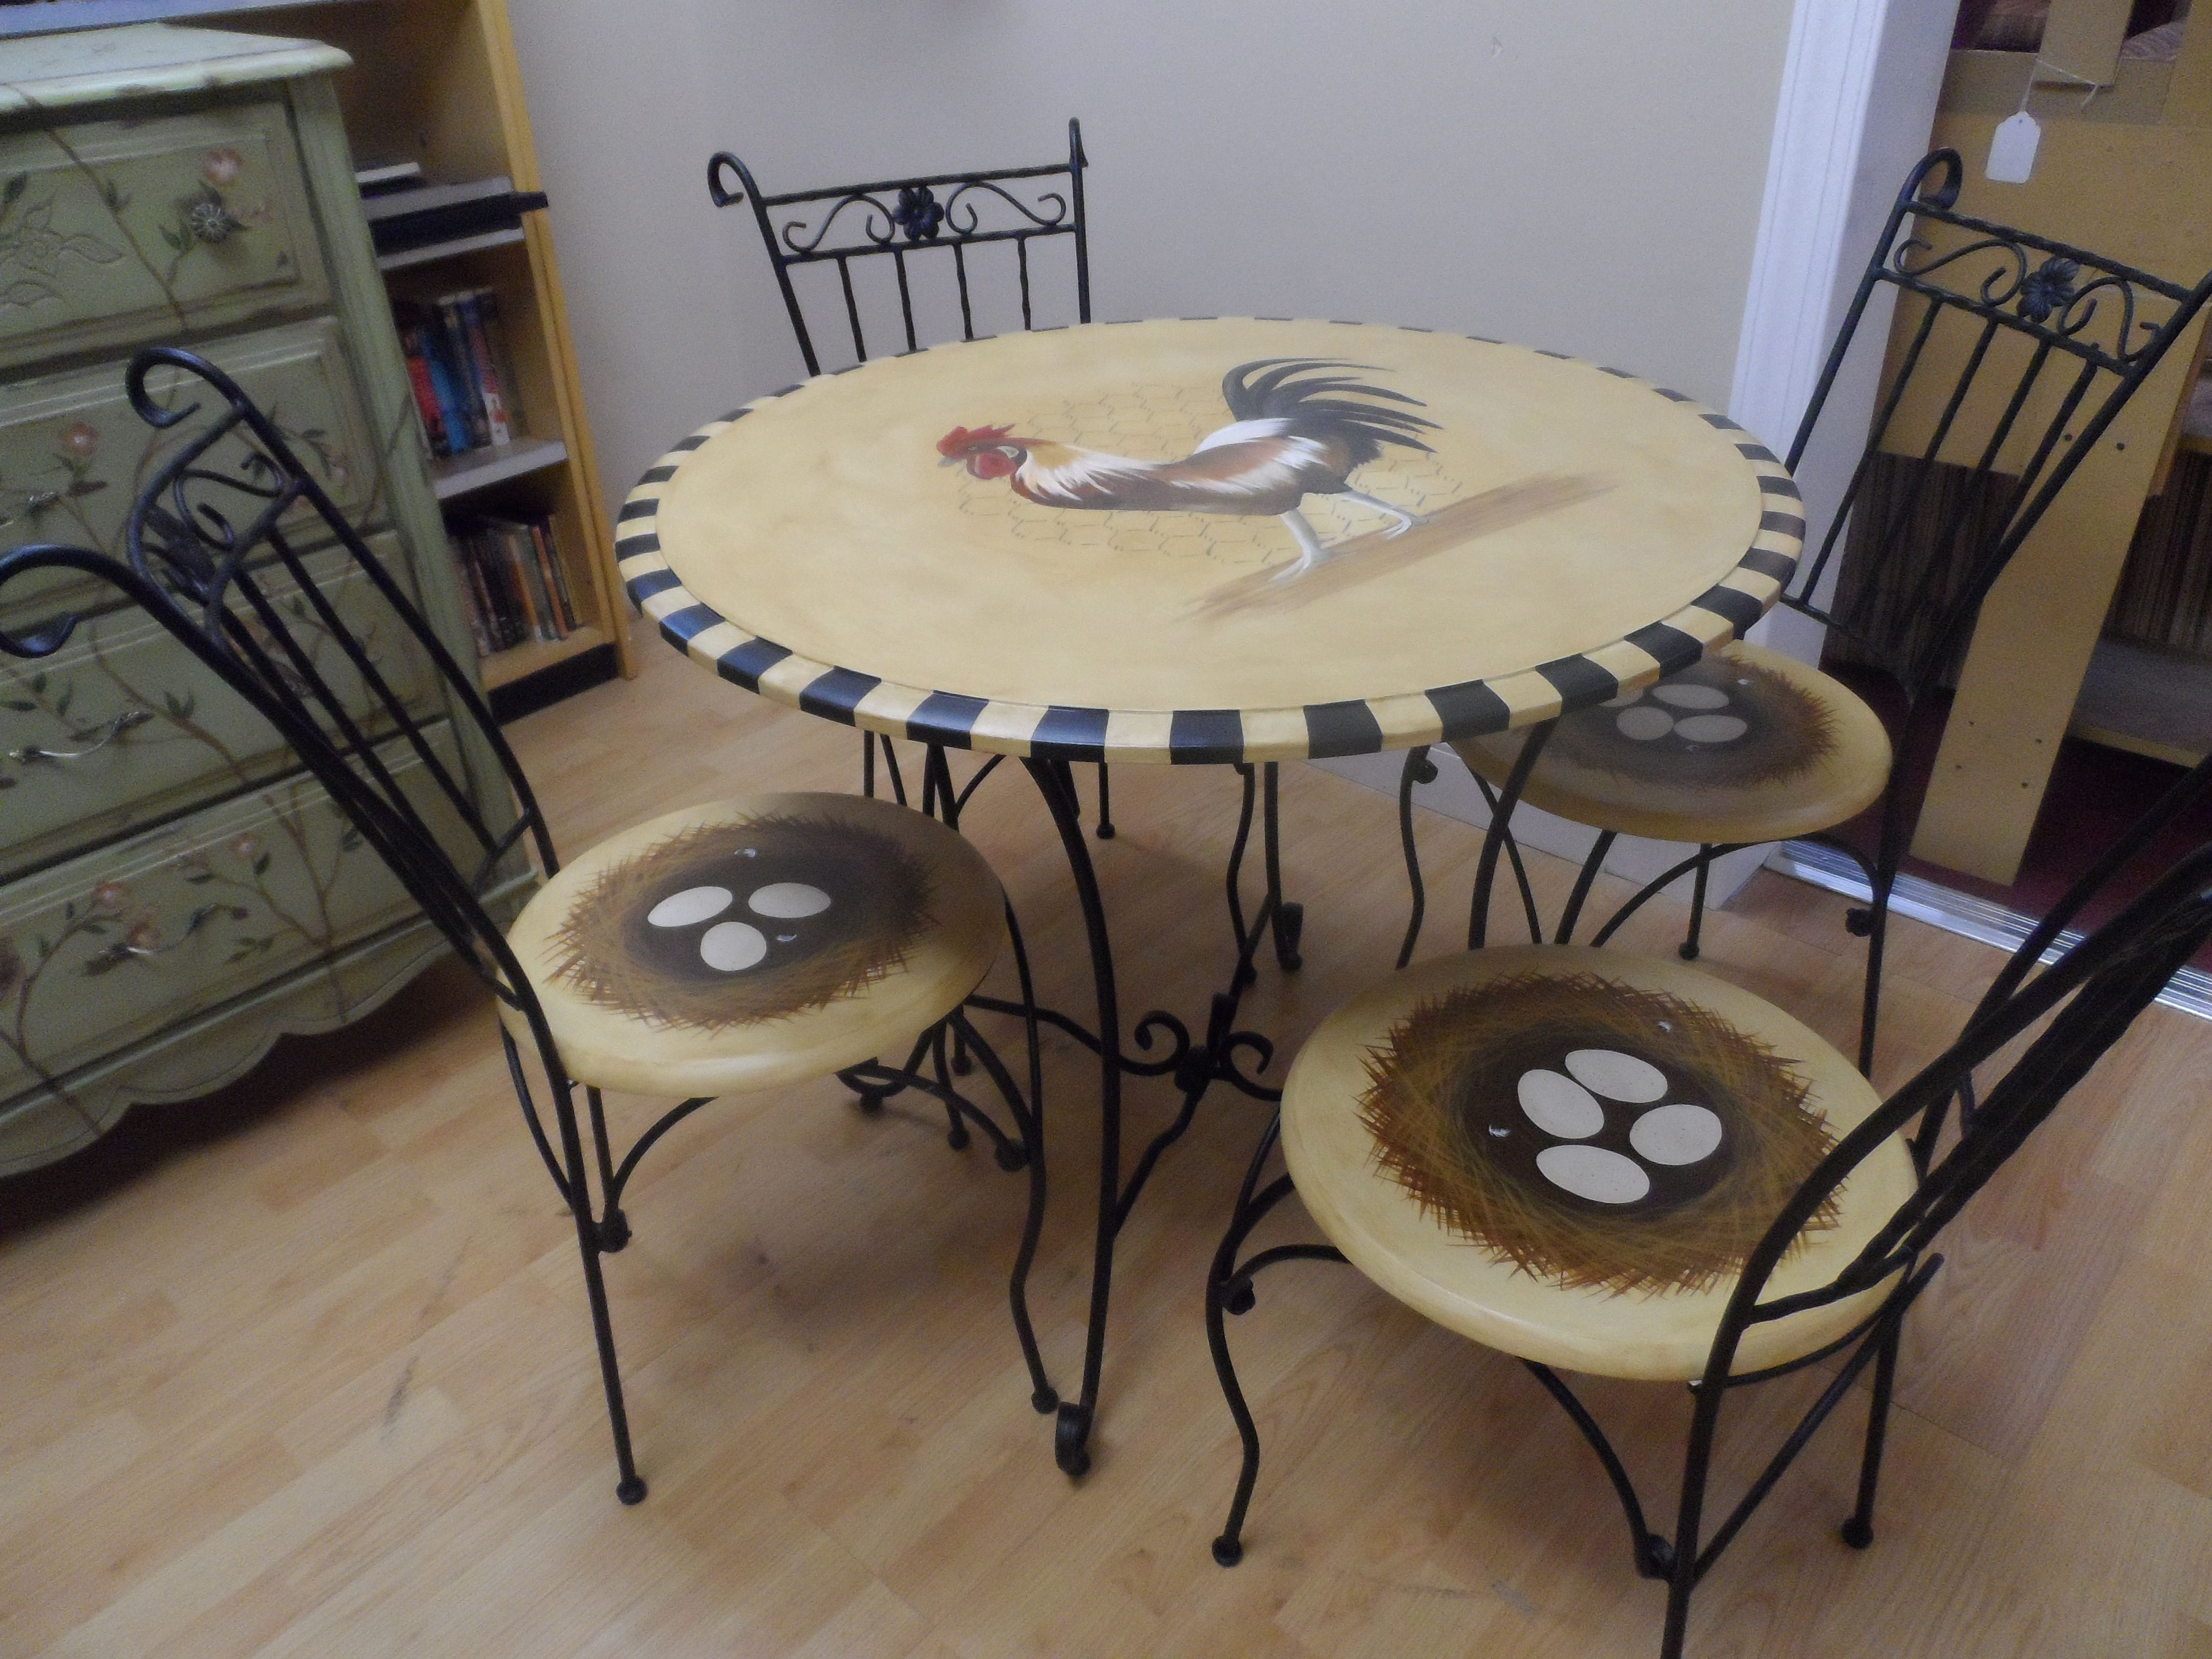 Genial French Country Rooster Table With Nest Chairs  My Most Popular Design For  Customers Hand Painted